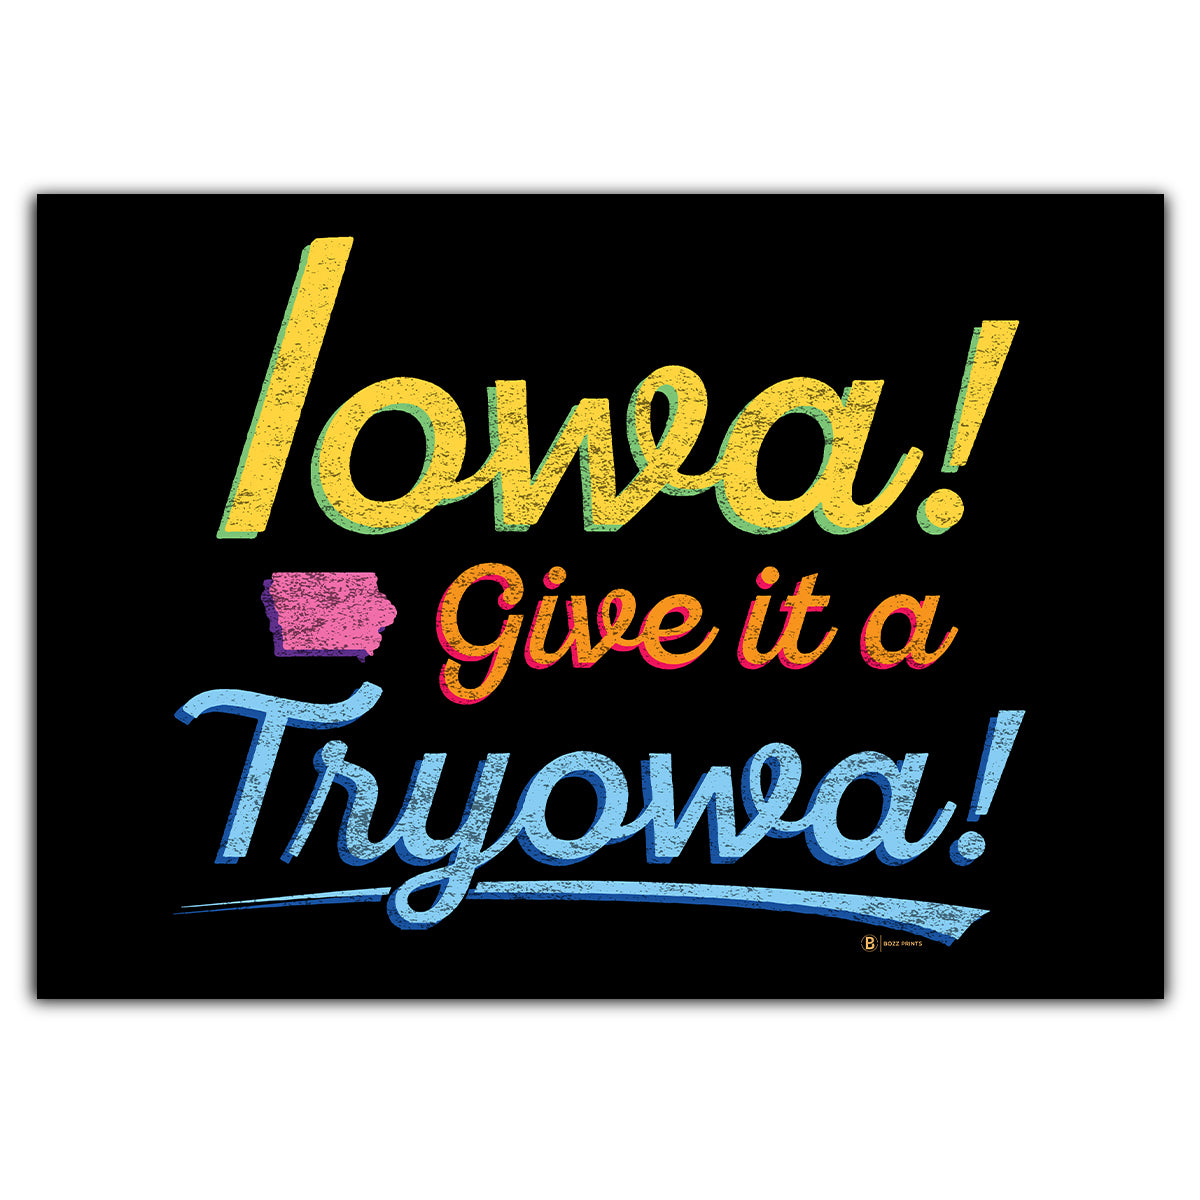 Iowa! Give it a Tryowa! Black Greeting Card